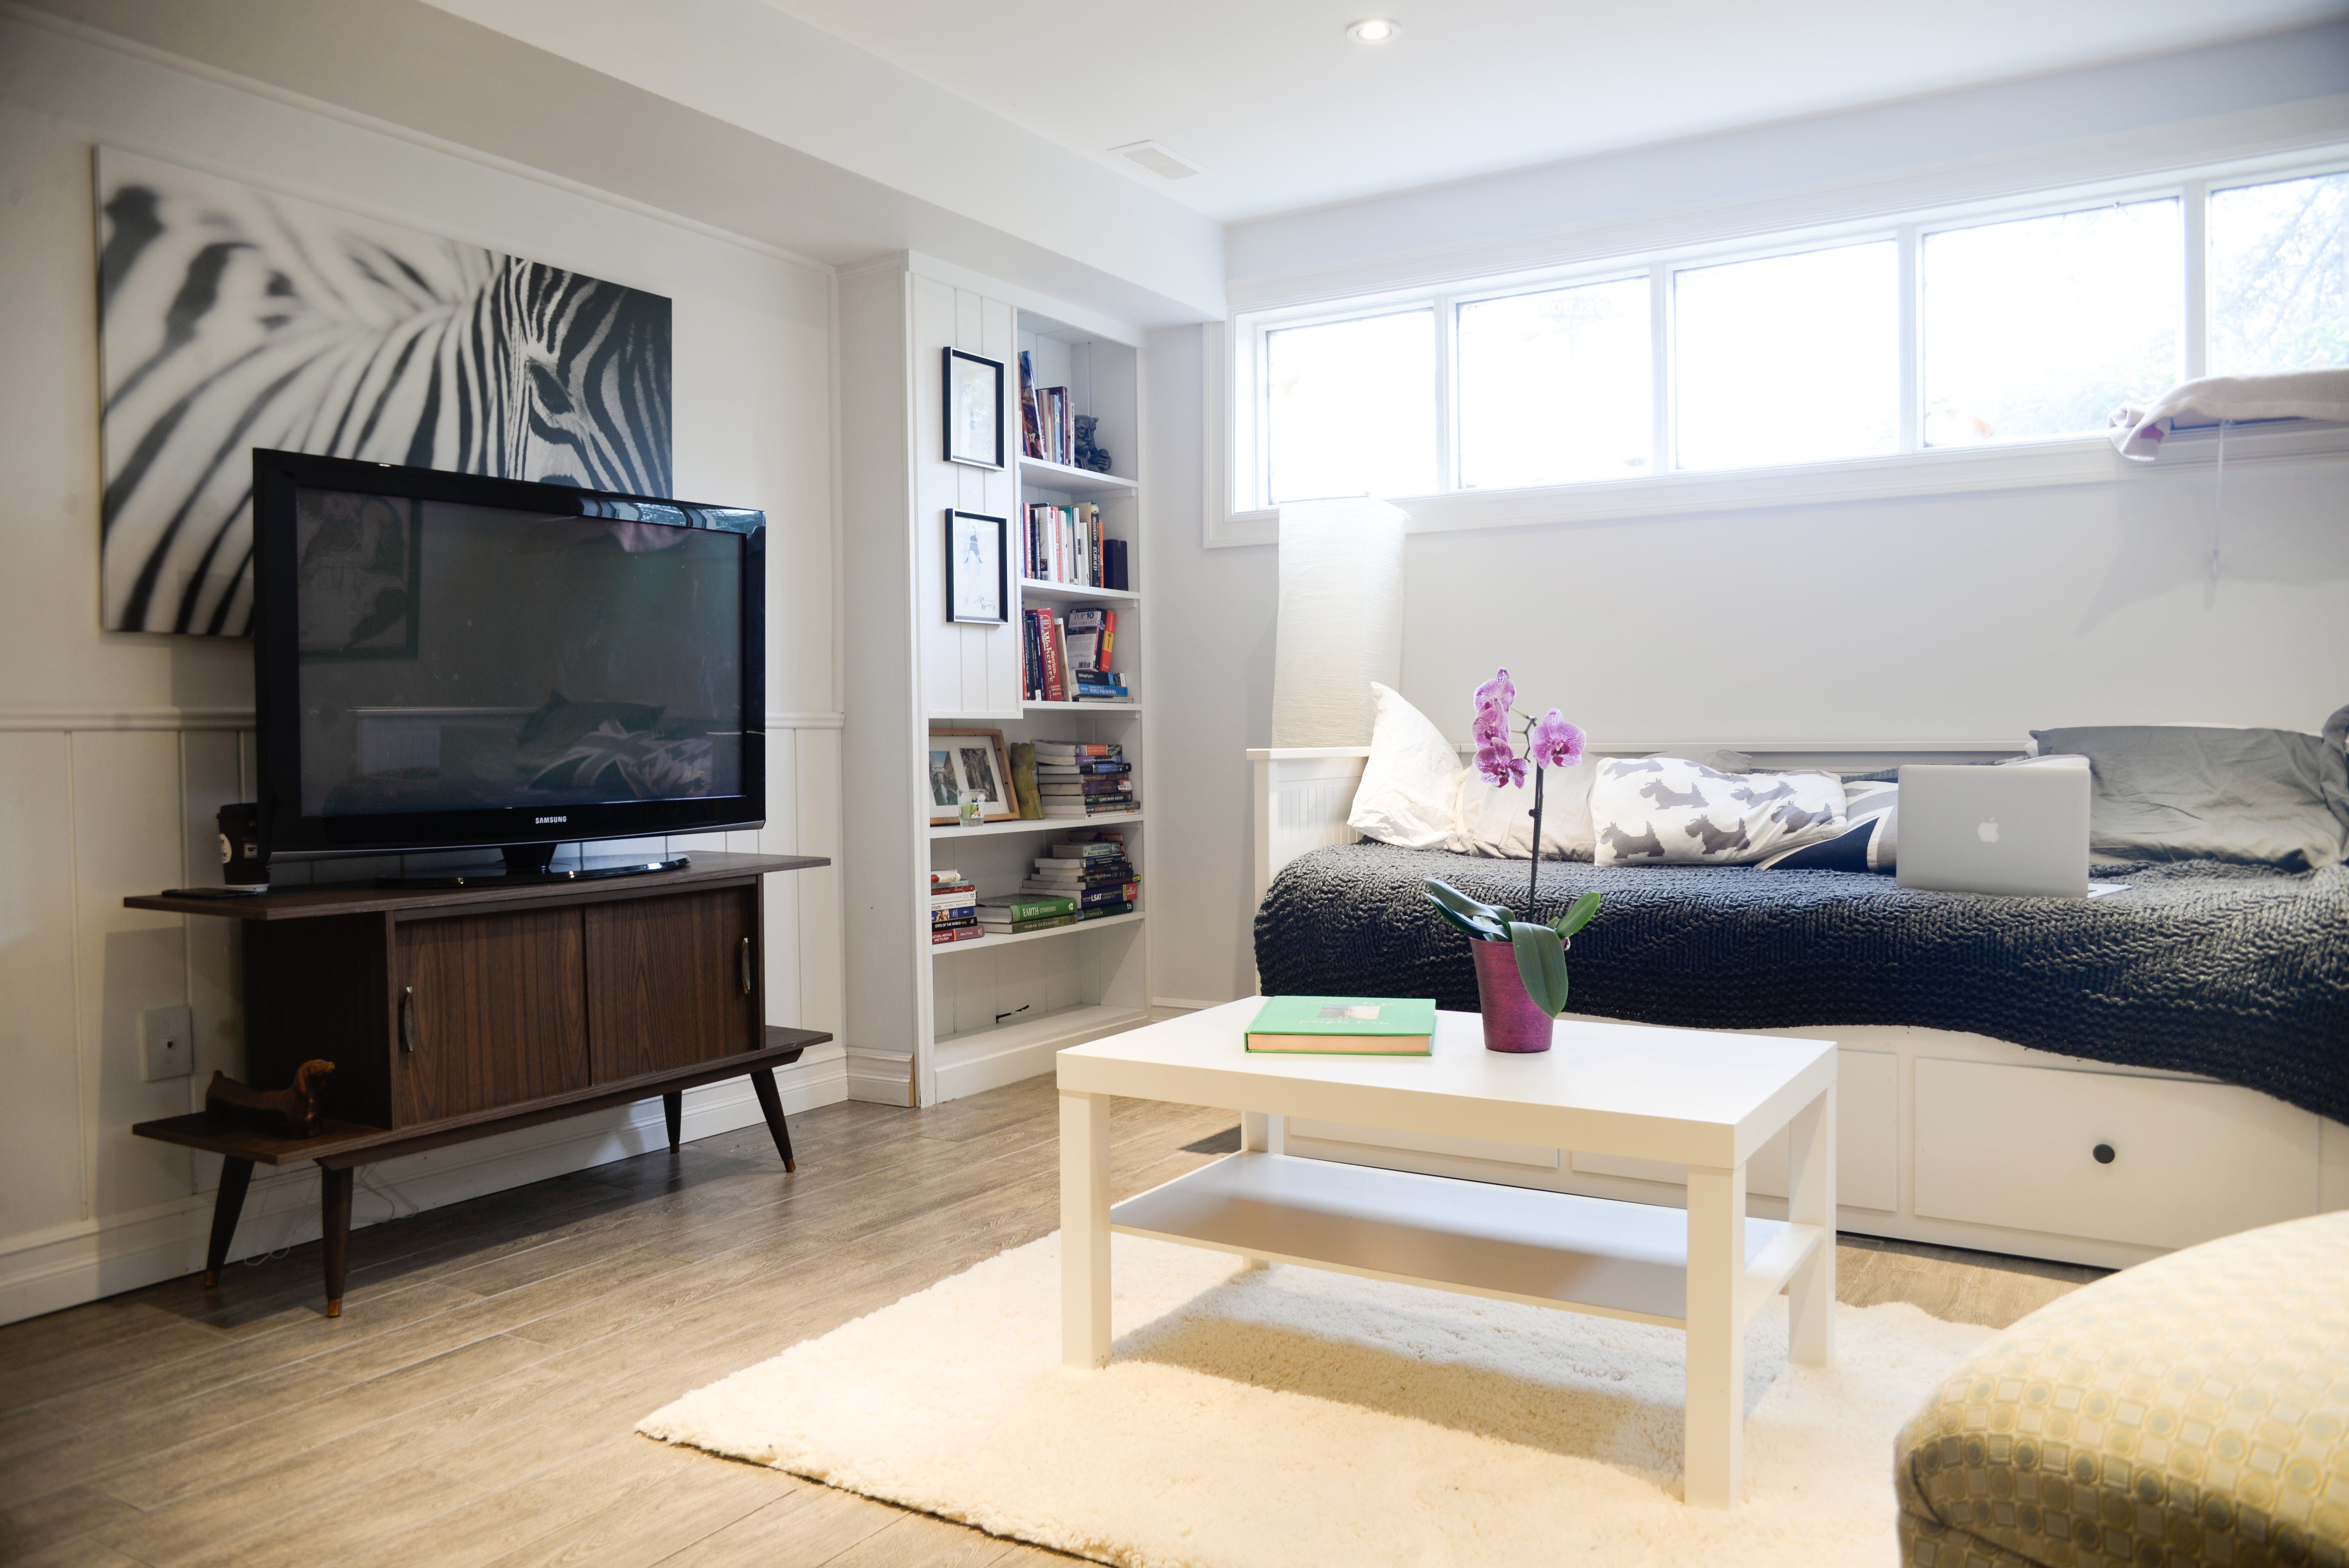 The Pros And Cons Of Renting Or Buying A Basement Apartment Basement Apartment Basement Studio Studio Apartment Decorating